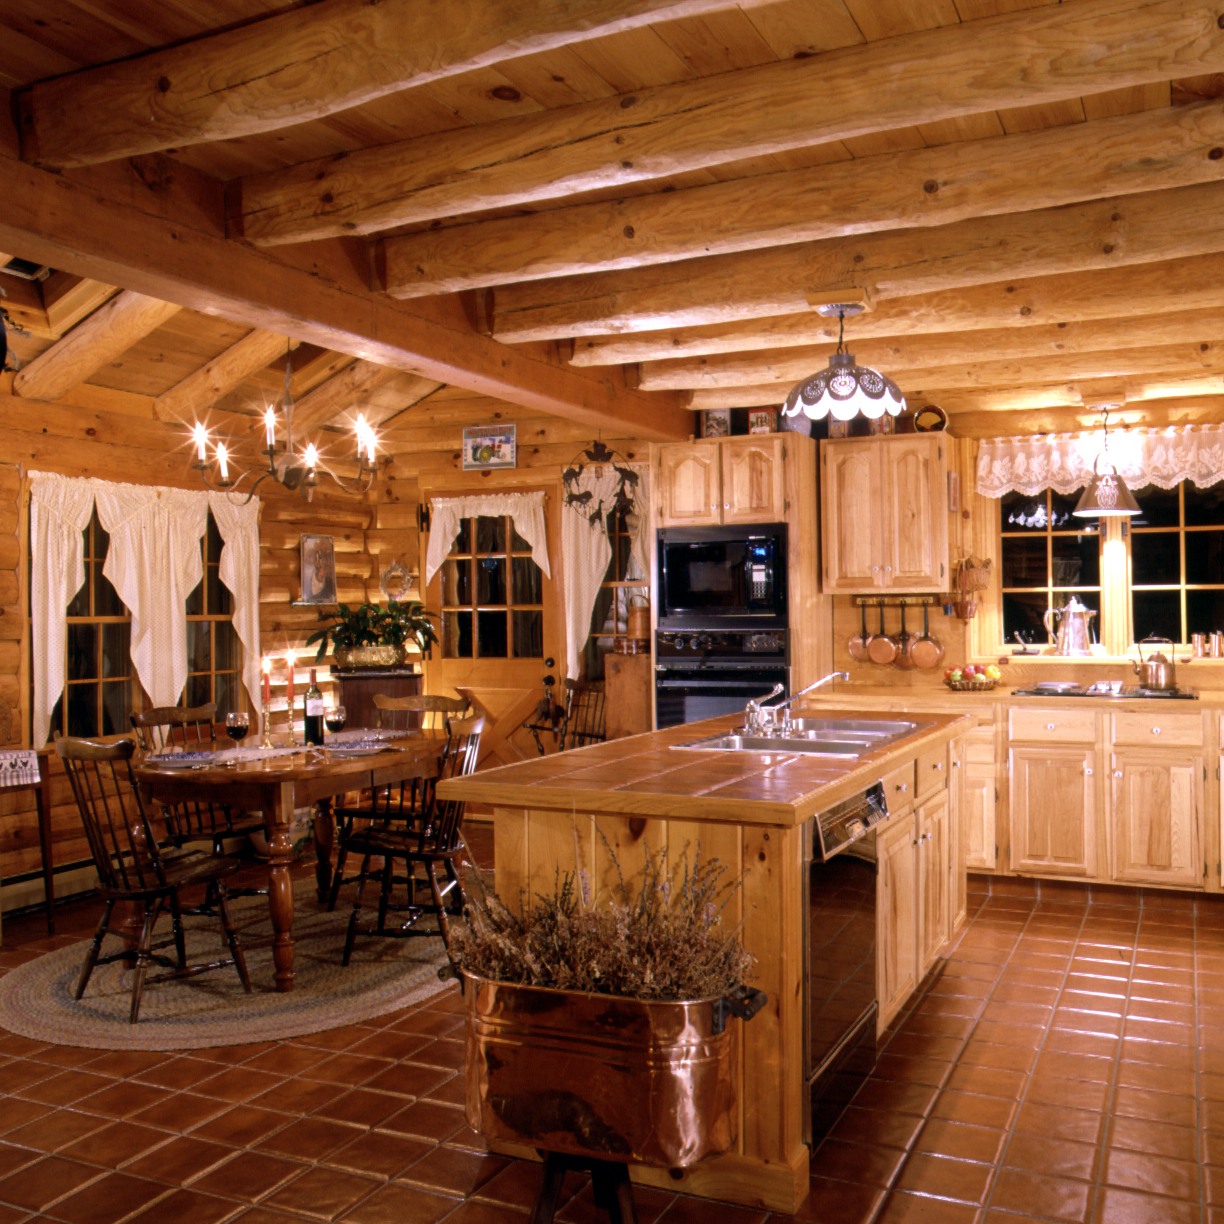 Log Home Kitchen Counter Choices | Real Log Homes